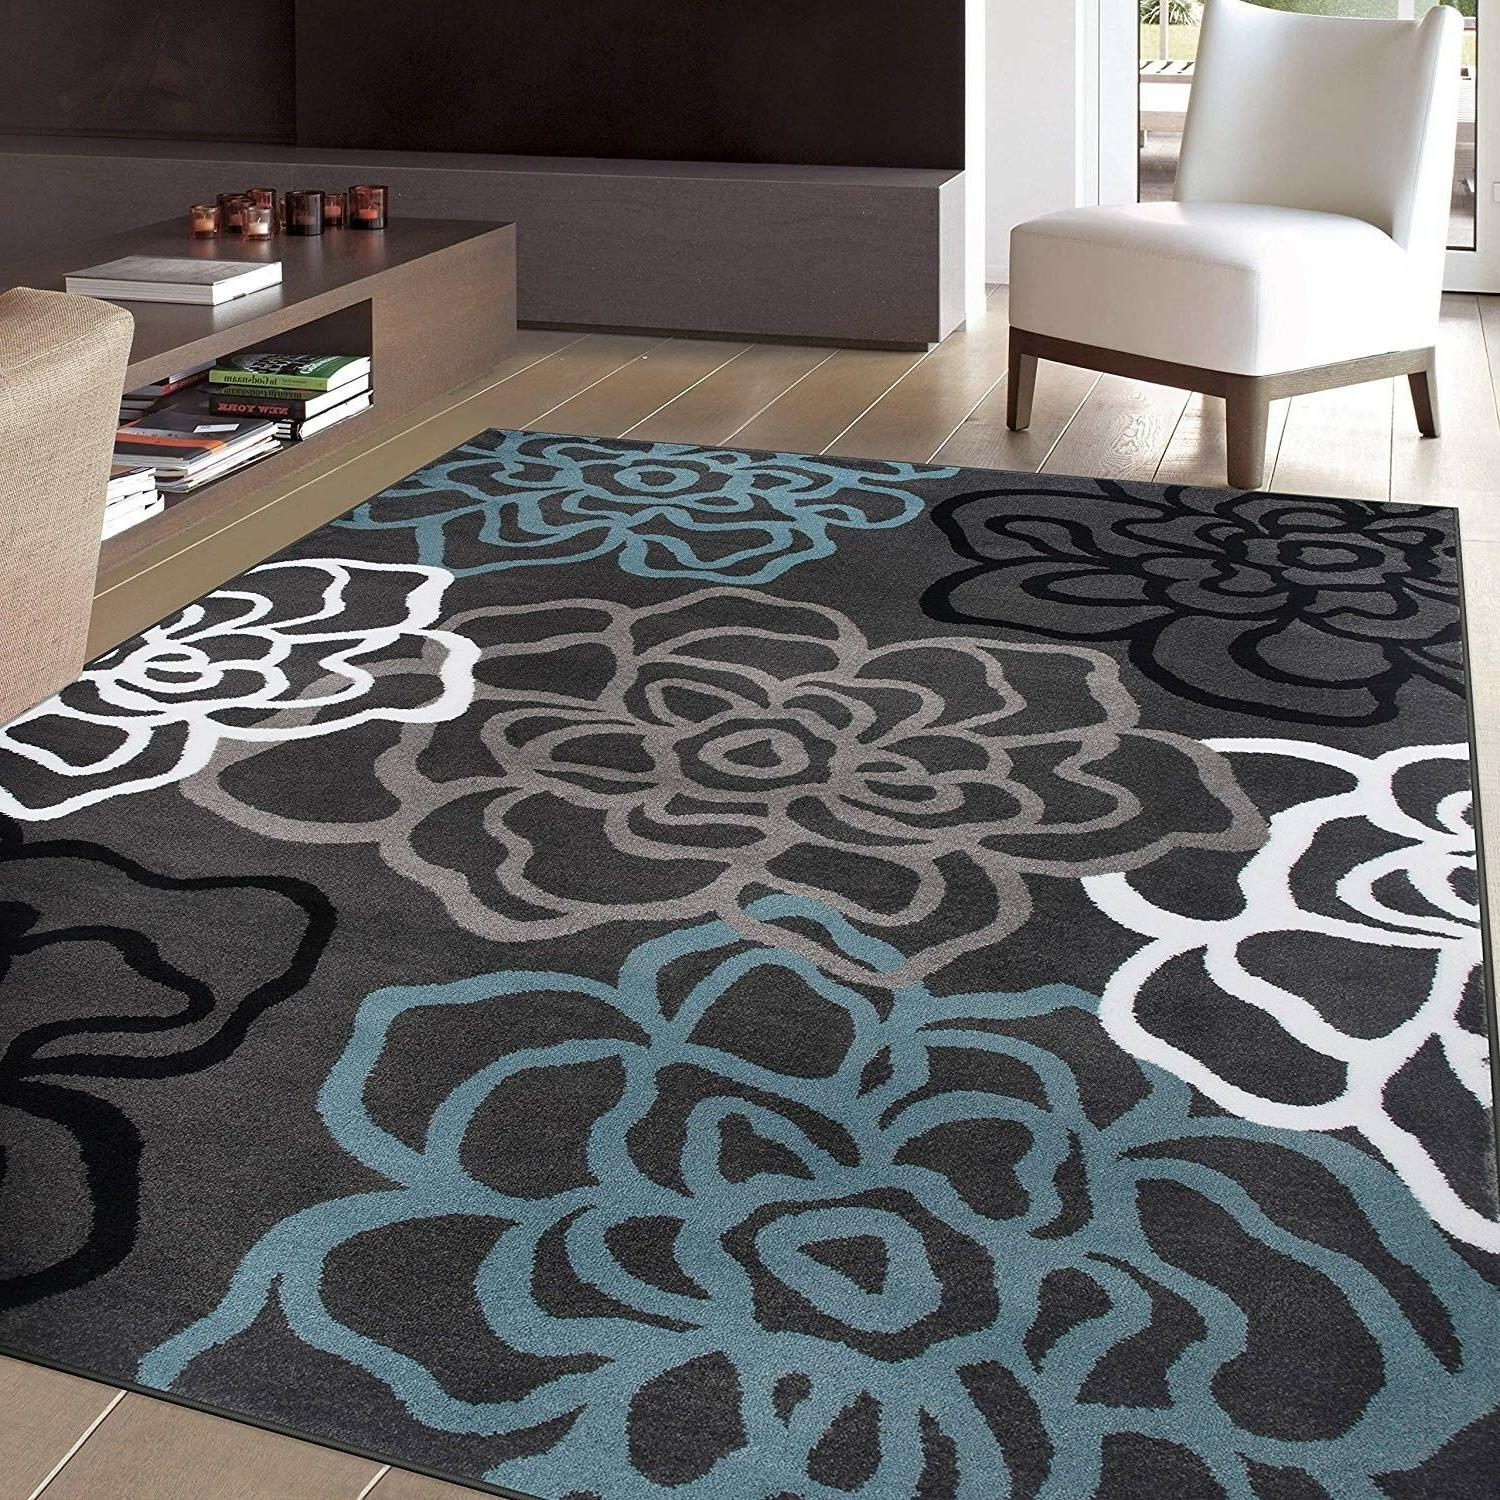 contemporary modern floral flowers area rug 5